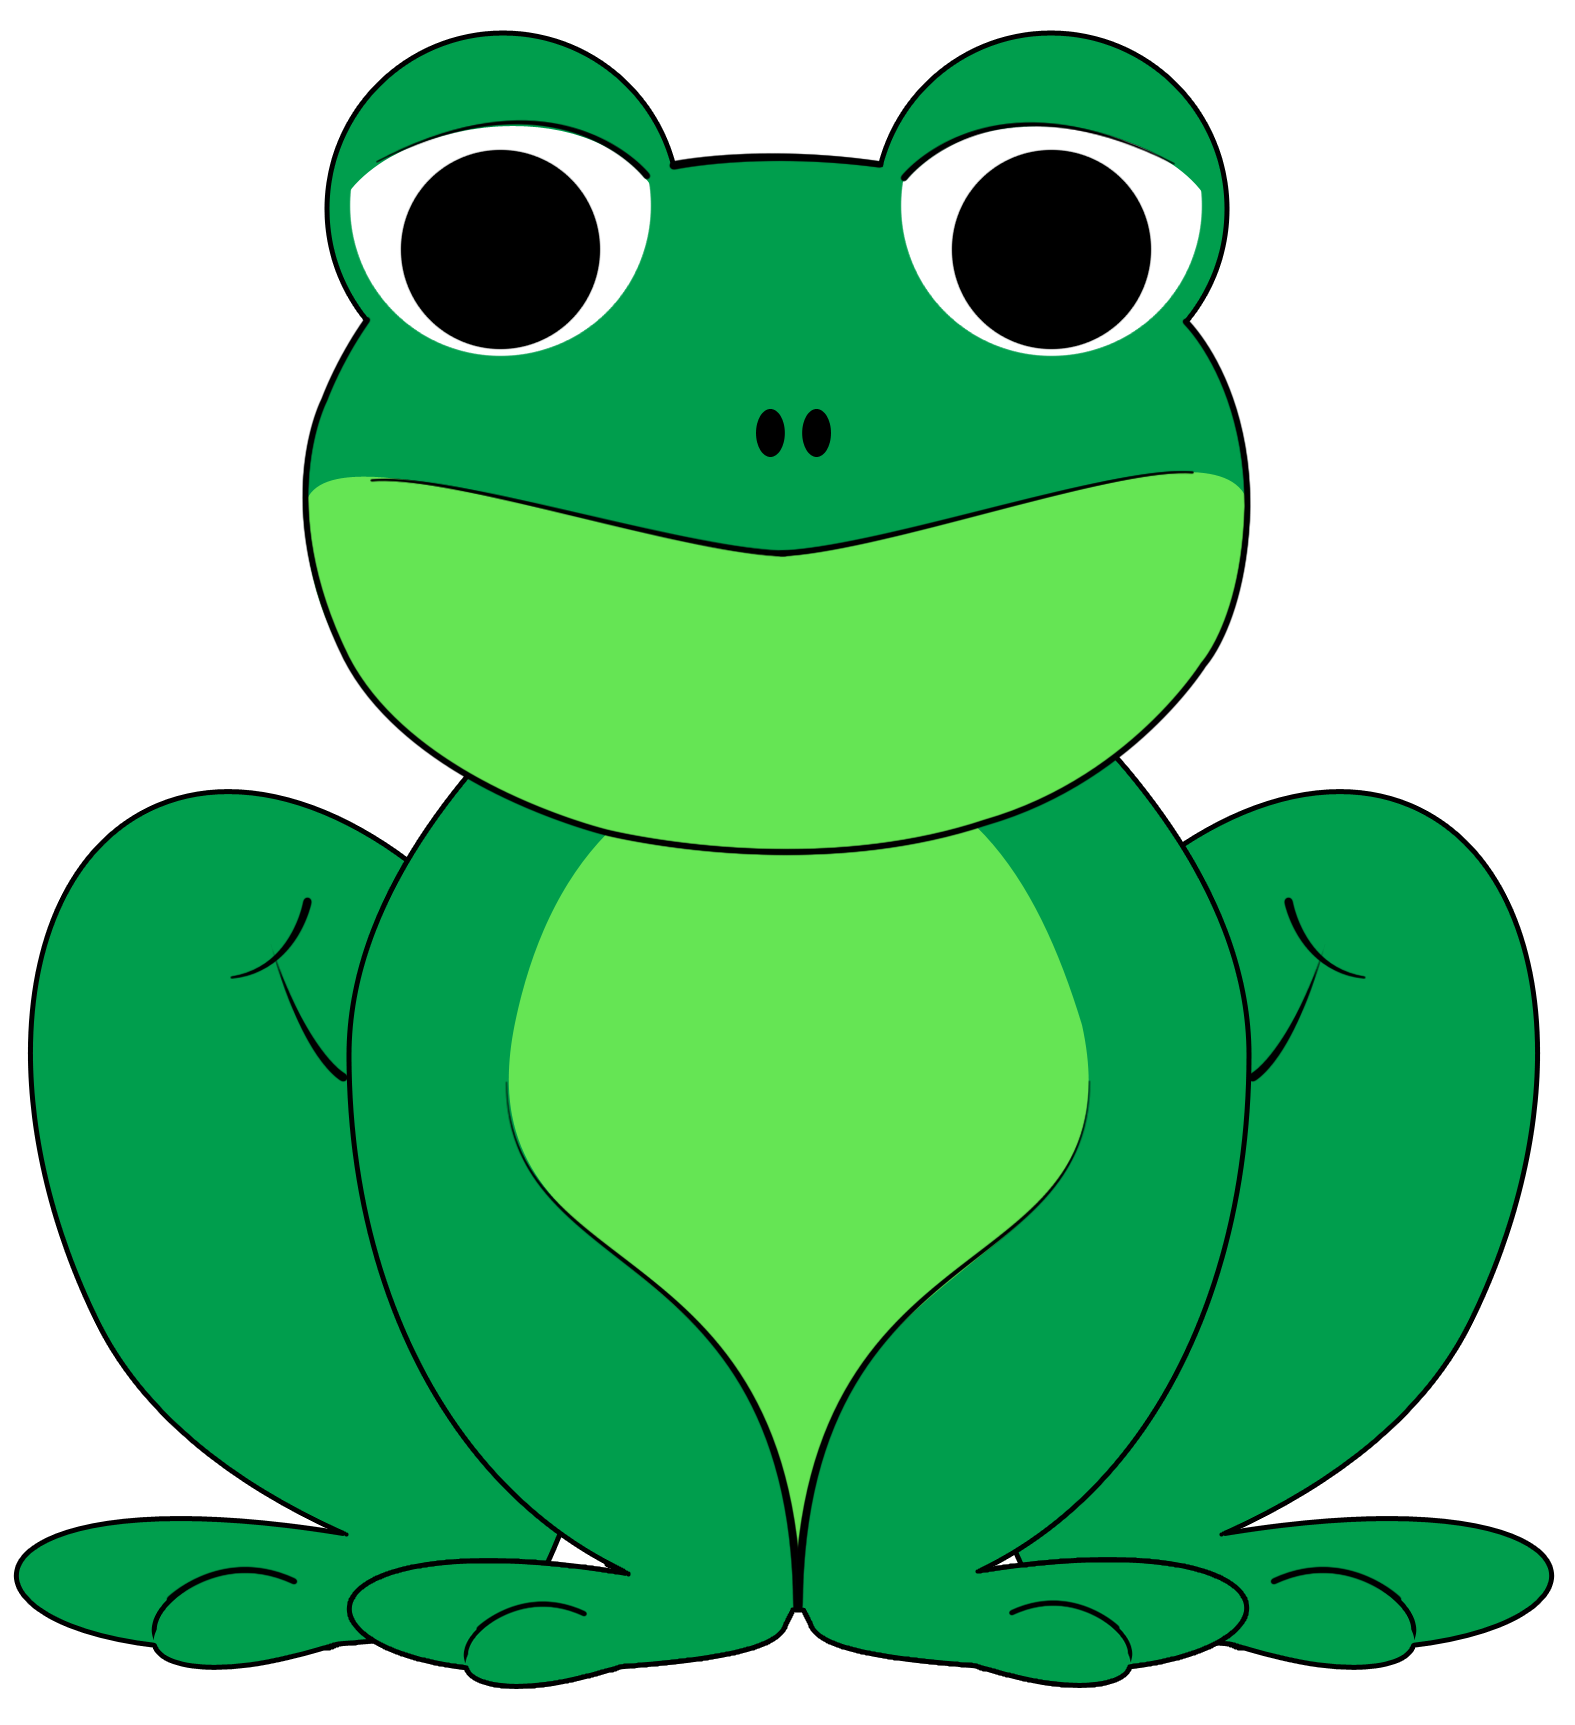 Frog clip art free vector image 5 - PNG Frogs Free